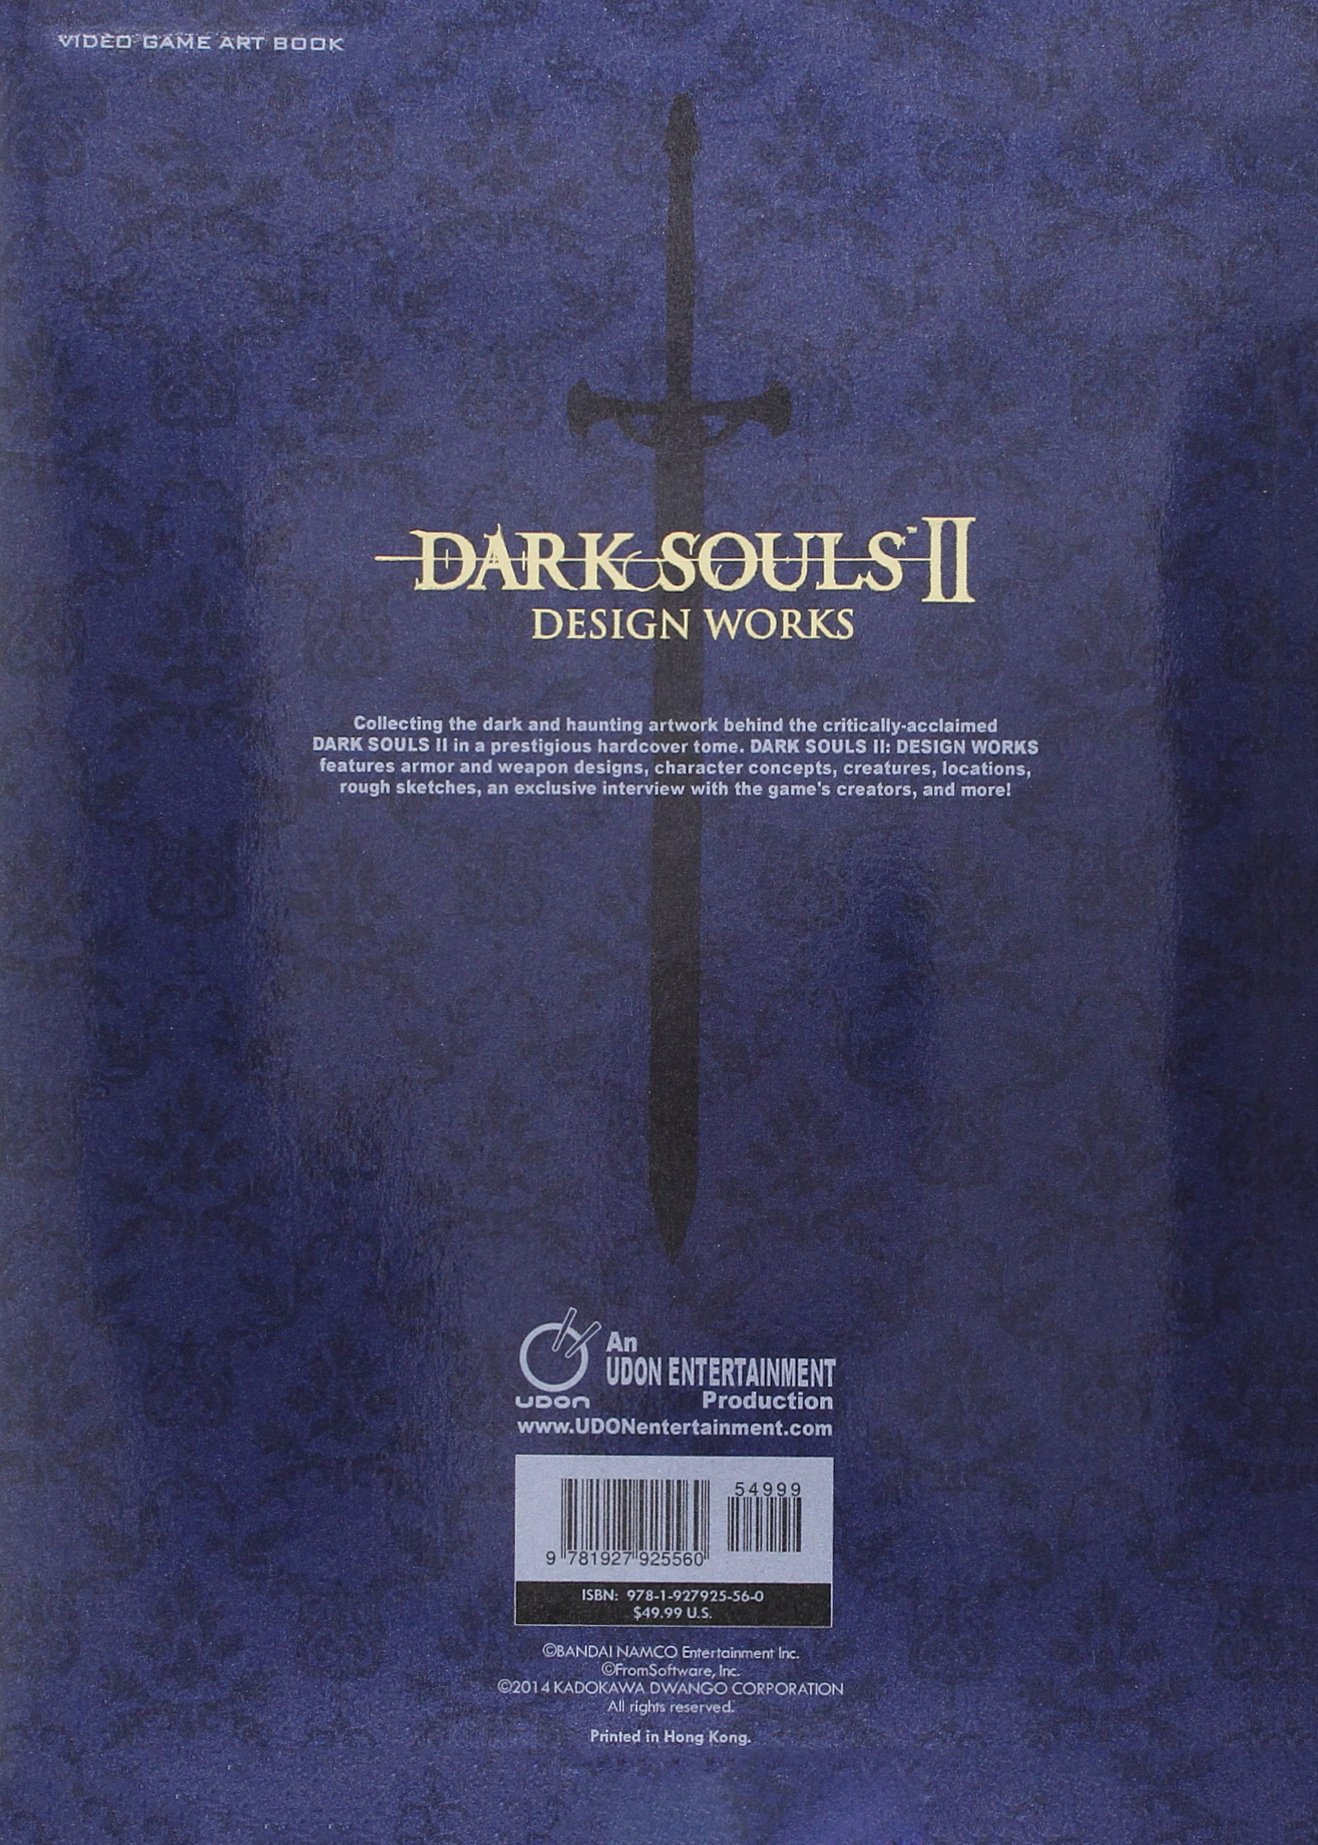 Dark Souls II: Design Works: Caleb D. Cook: 9781927925560: Amazon ...